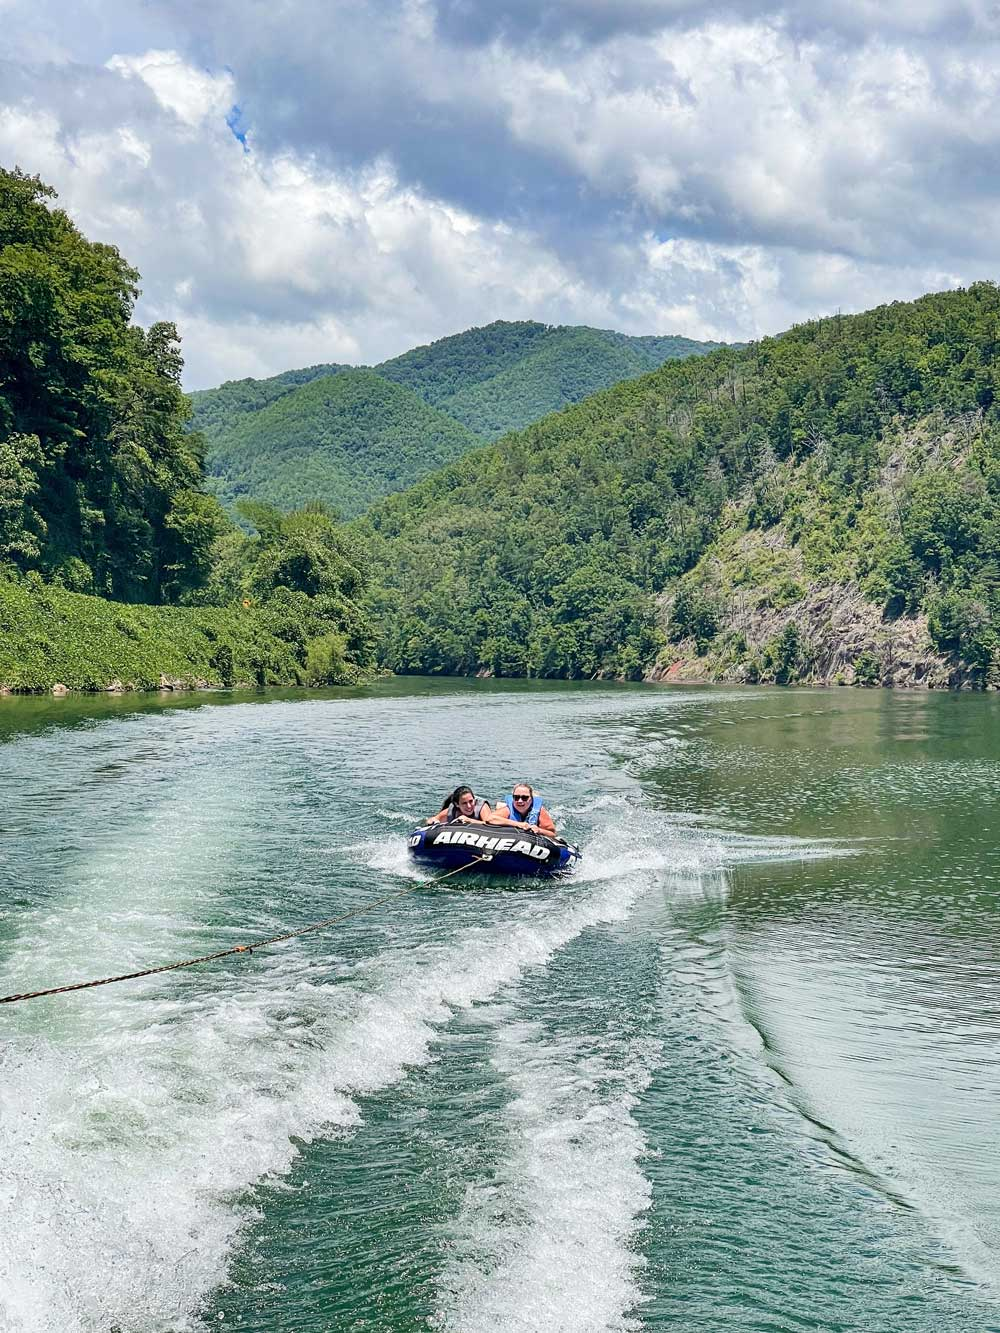 Best Things to Do in Bryson City NC with Kids - Boating on Lake Fontana   Things to do in Bryson City NC by popular Florida travel blog, Fresh Mommy Blog: image of a family boating on Lake Fontana.